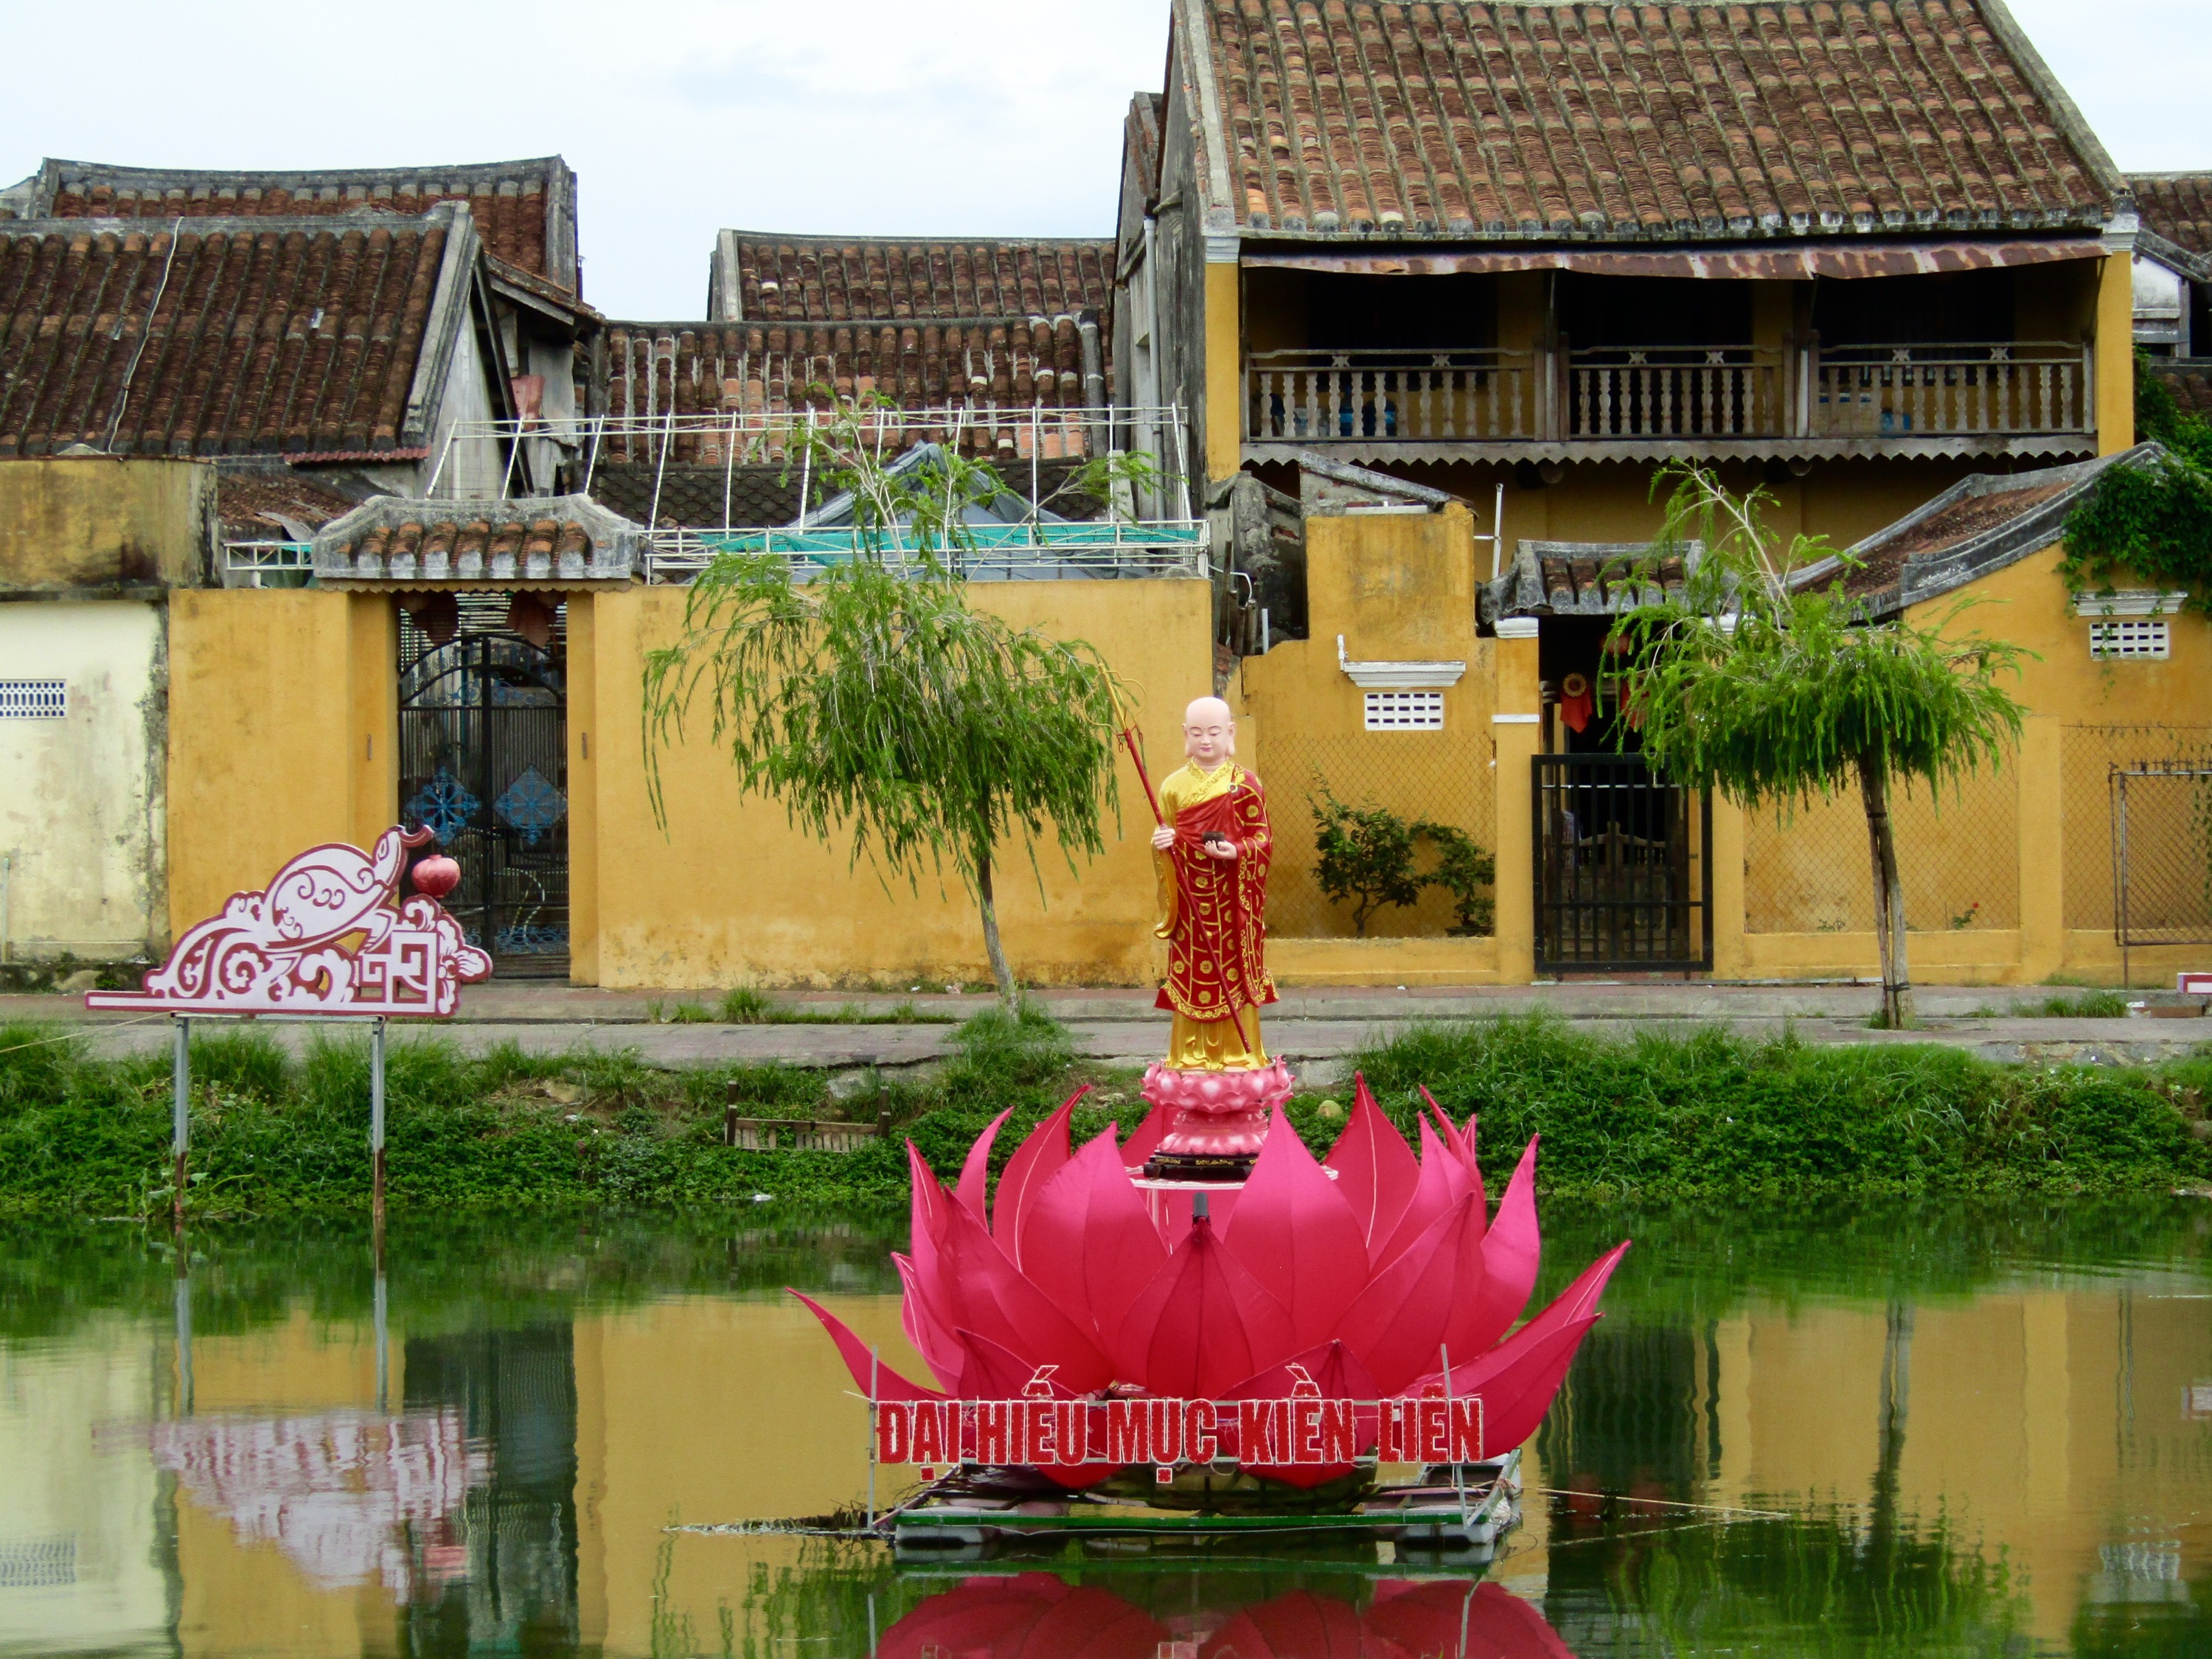 Ornate decorations floated all along the Thu Bon River, including this one depicting Maudgalyāyana, a disciple of Buddha, emerging from a lotus flower.